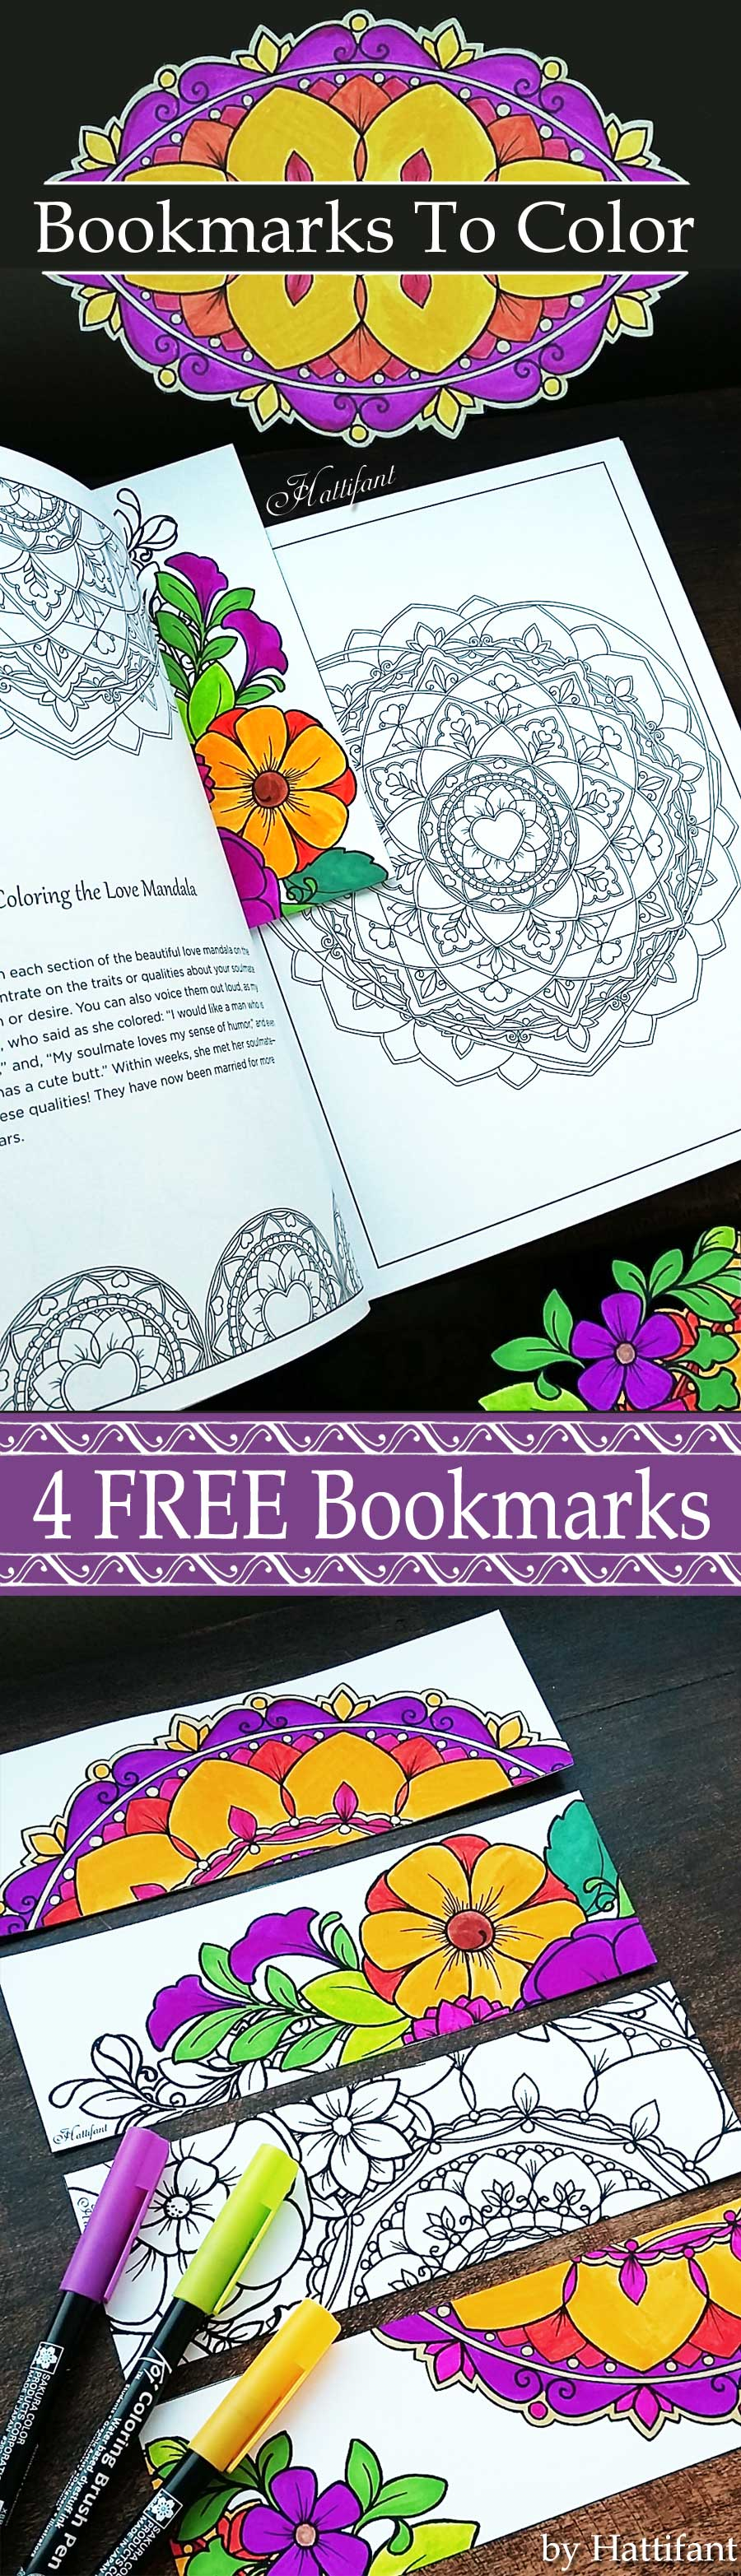 Hattifant's Flower and Mandala Bookmarks to color free printable coloring page